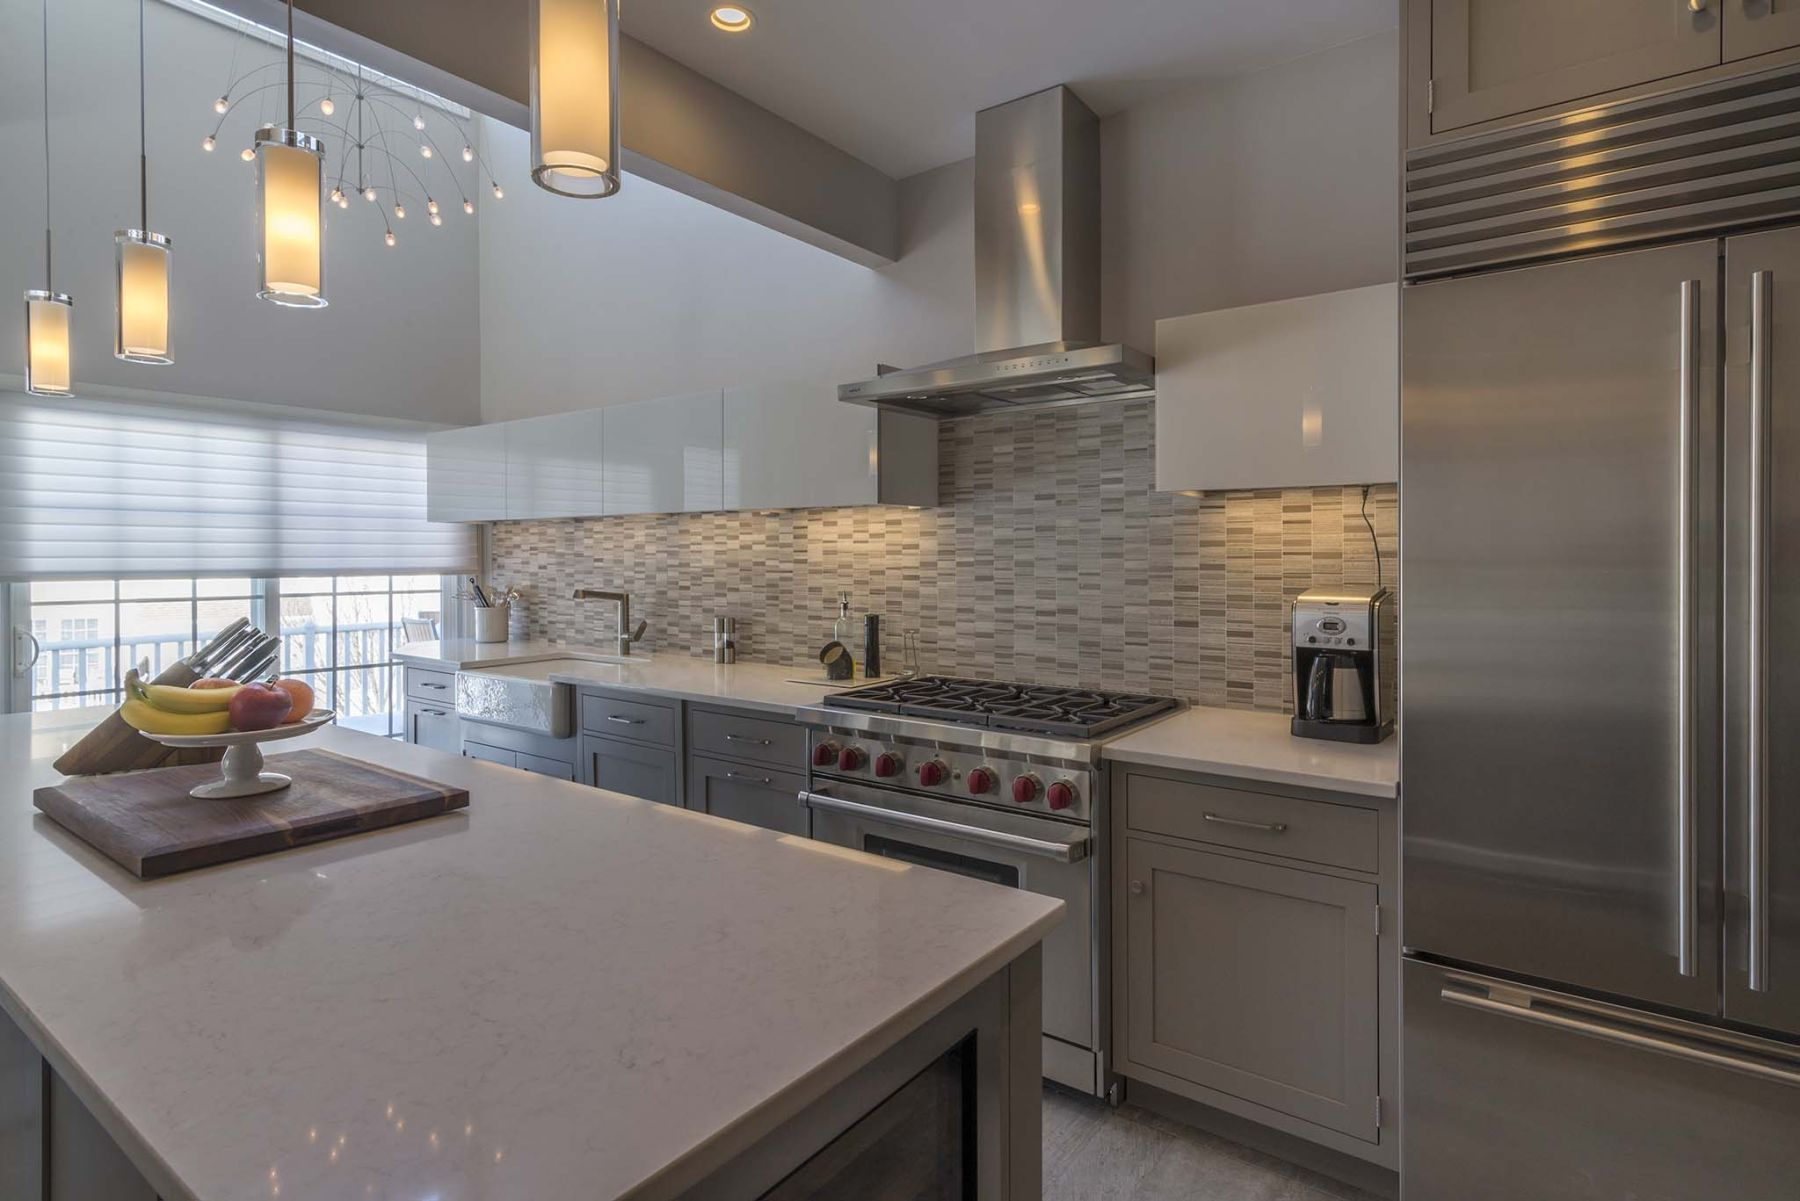 Kitchen Cabinet Showrooms Bergen County Nj | Wow Blog